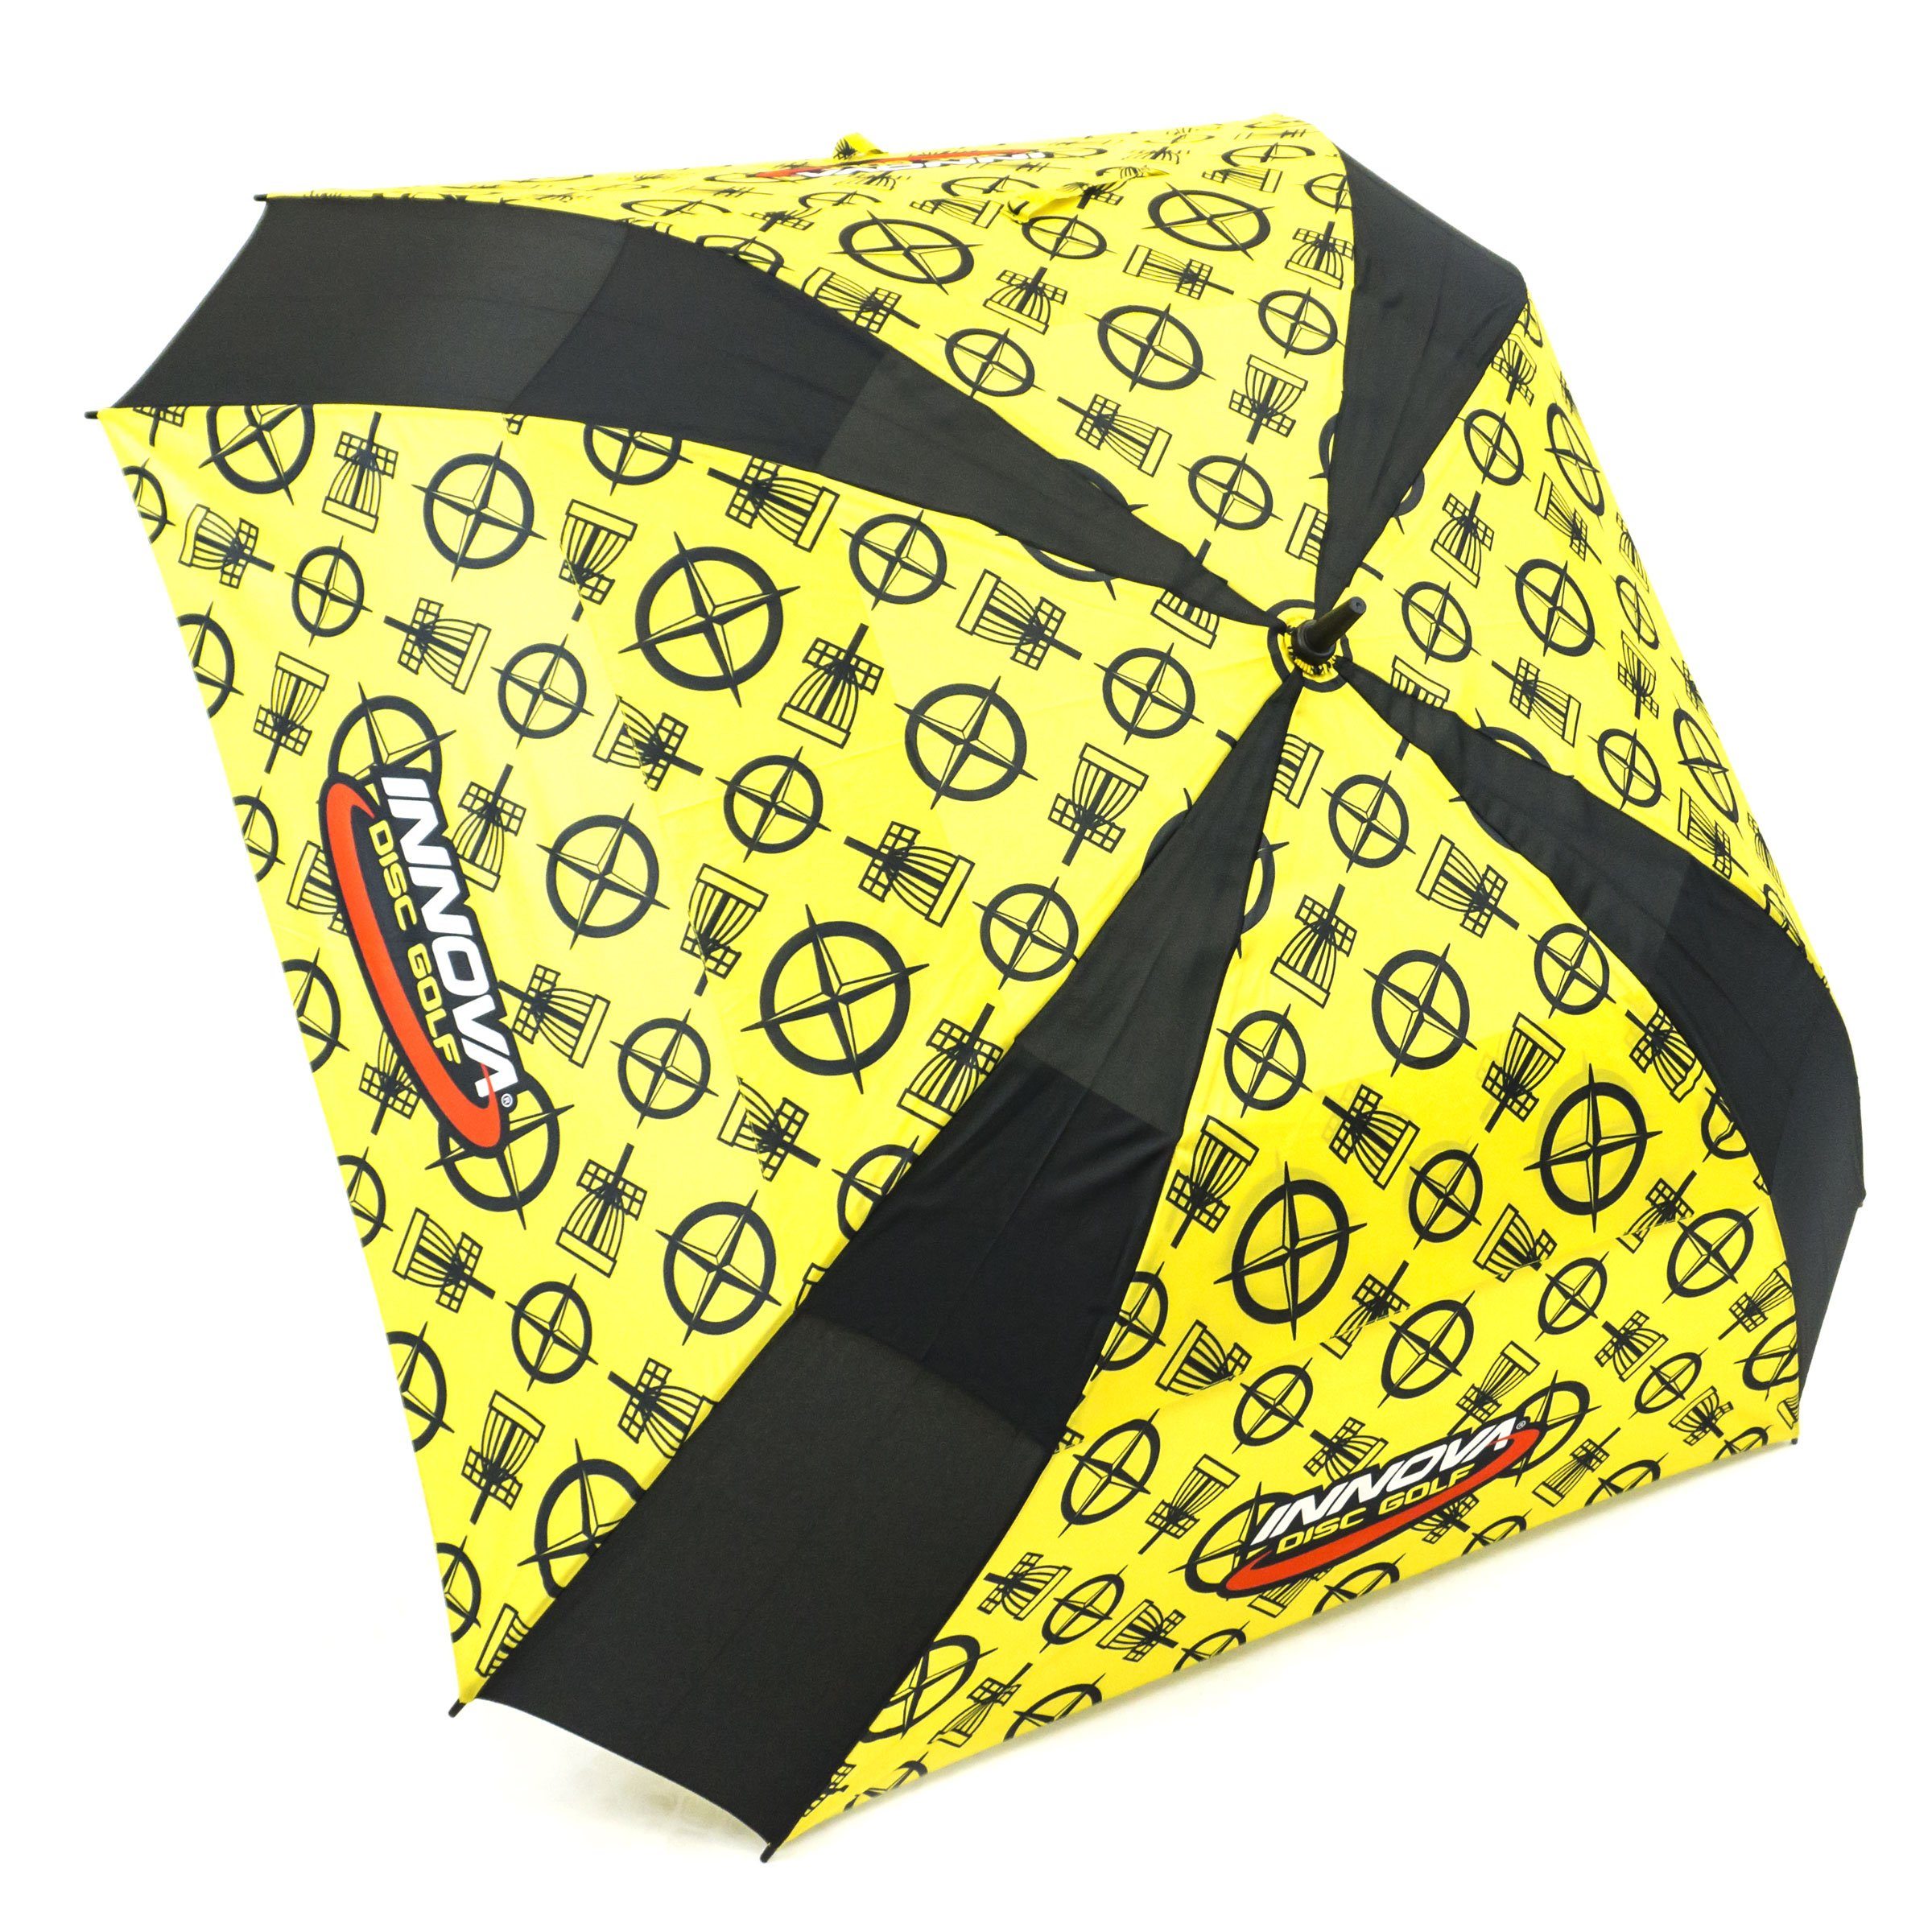 INNOVA Disc Golf Proto Pattern Golf Umbrella - Yellow